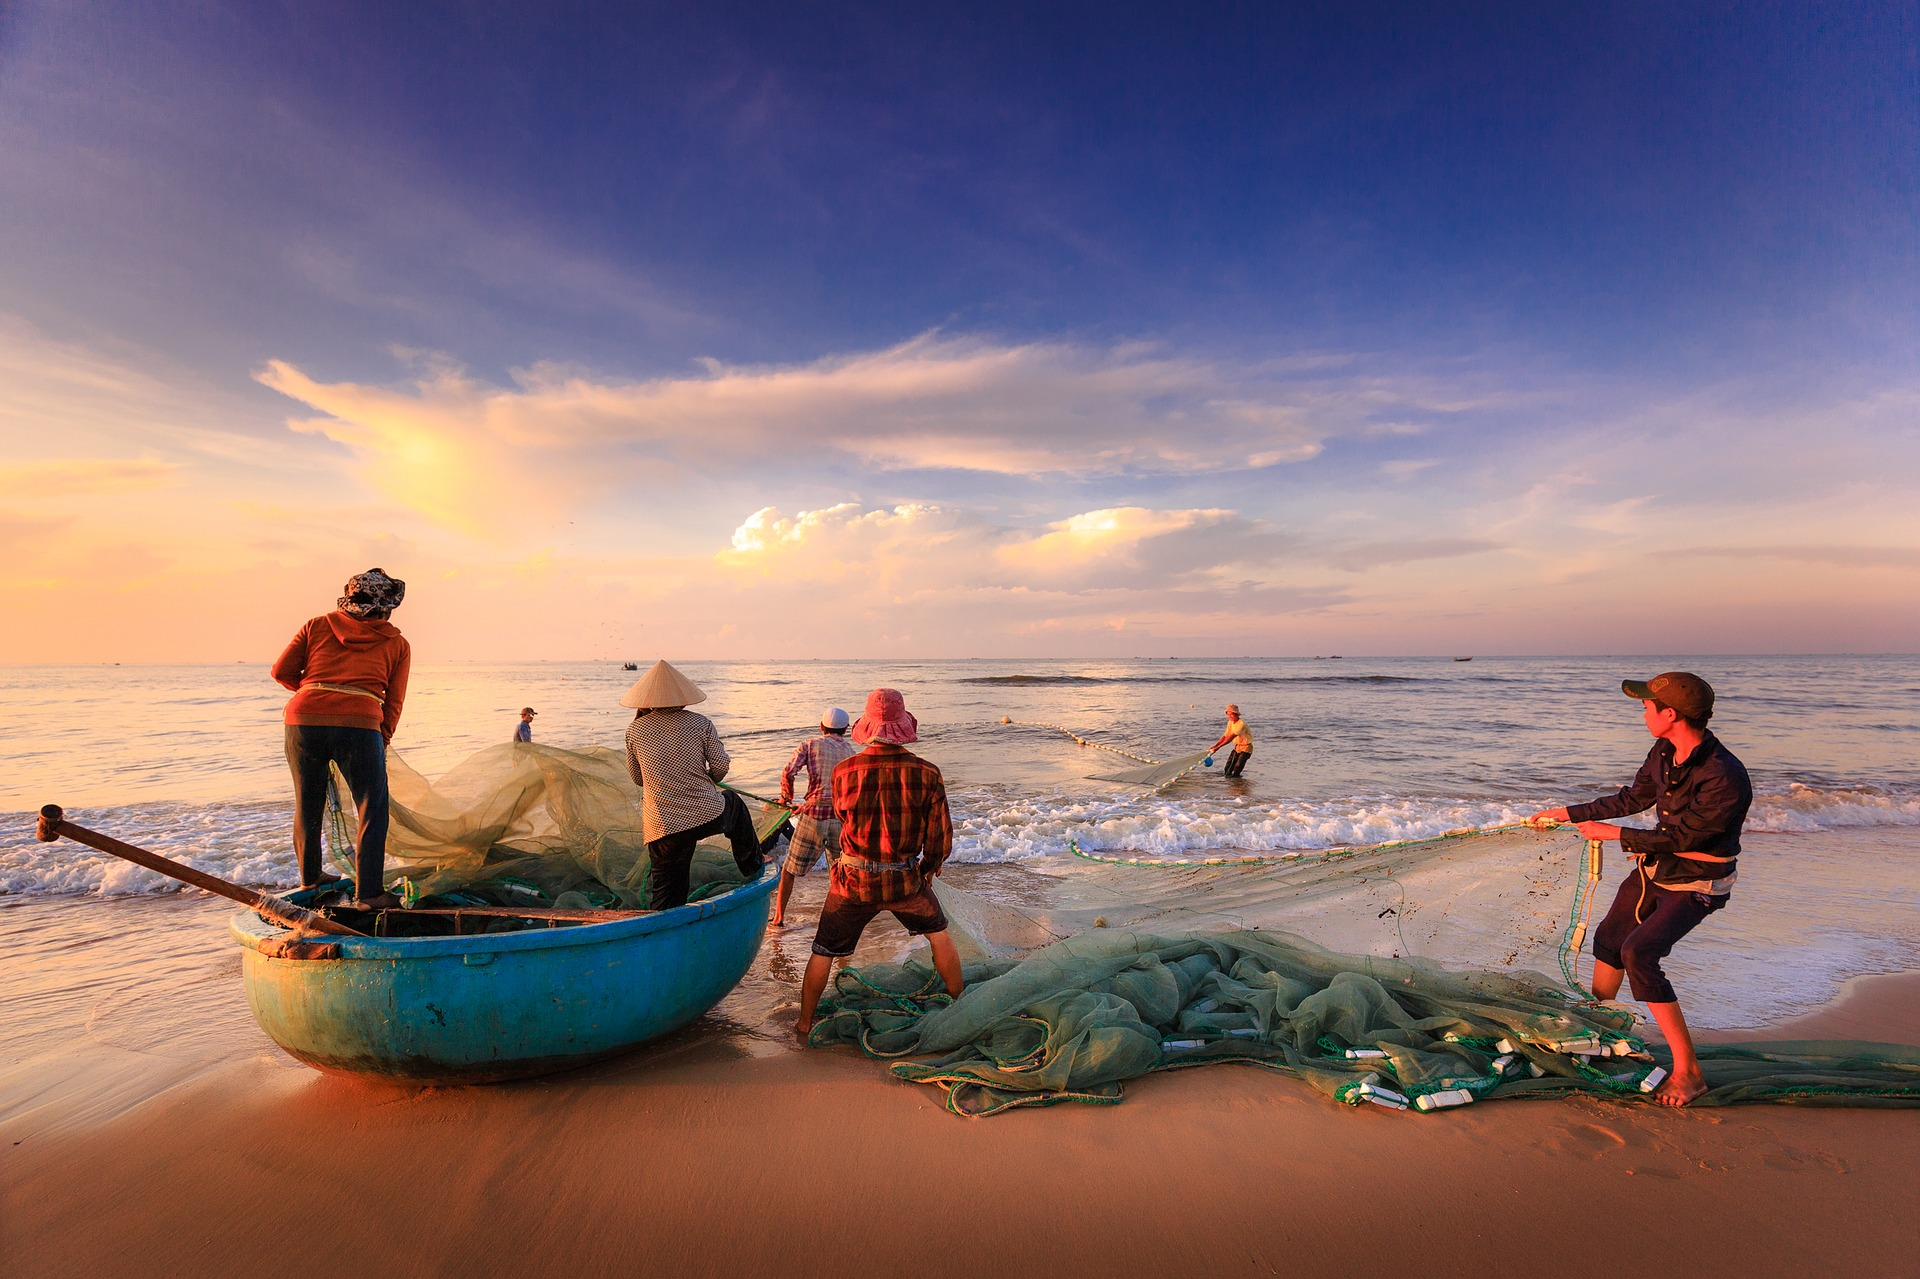 Fishers of Men with Nets